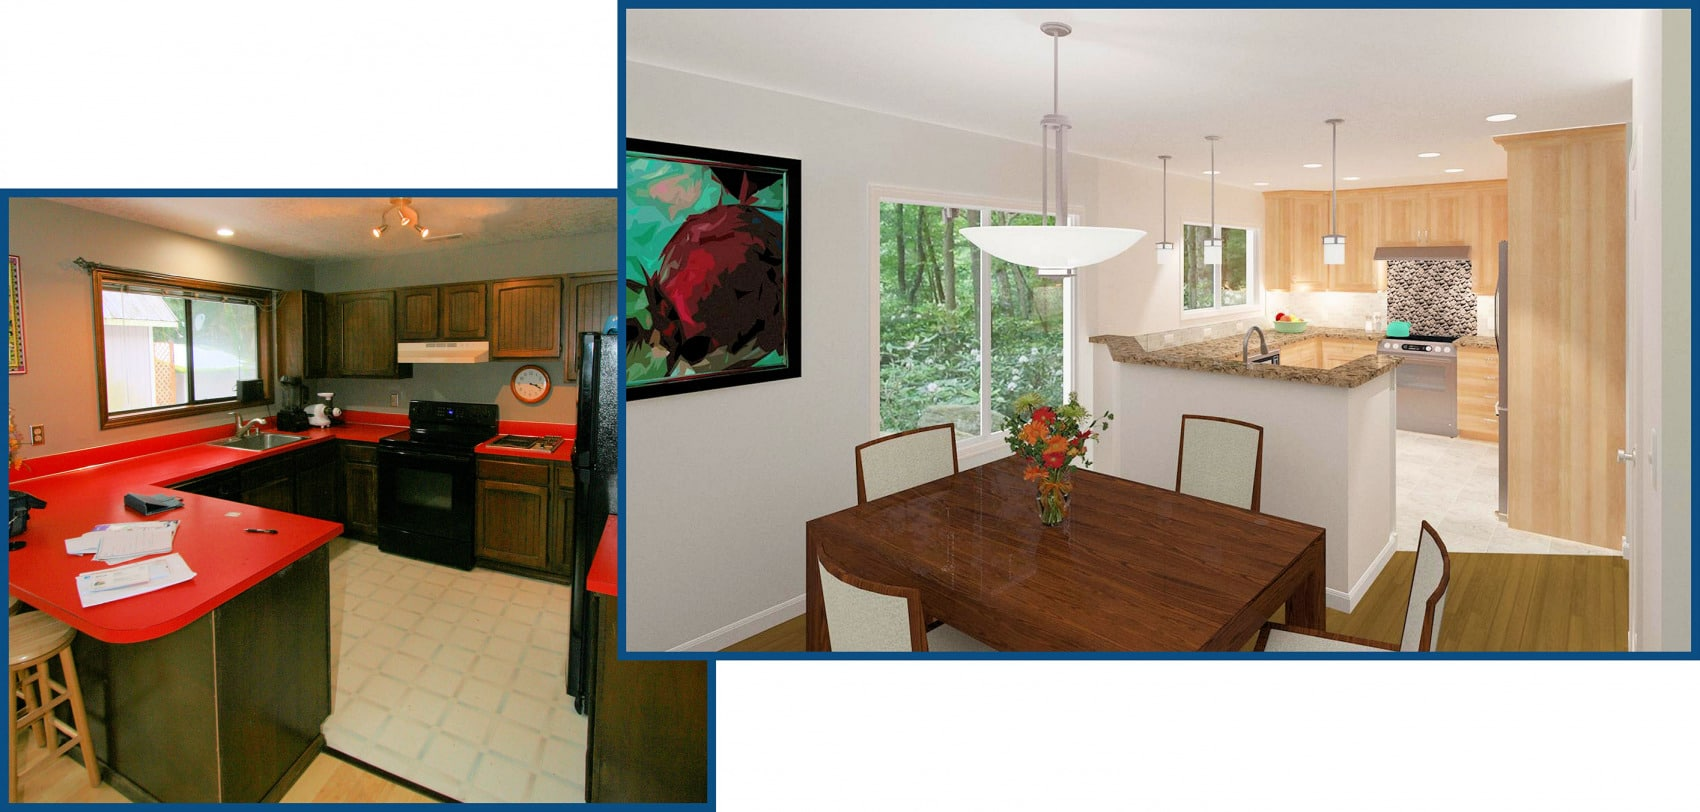 Brightwood Kitchen Remodel Before and After